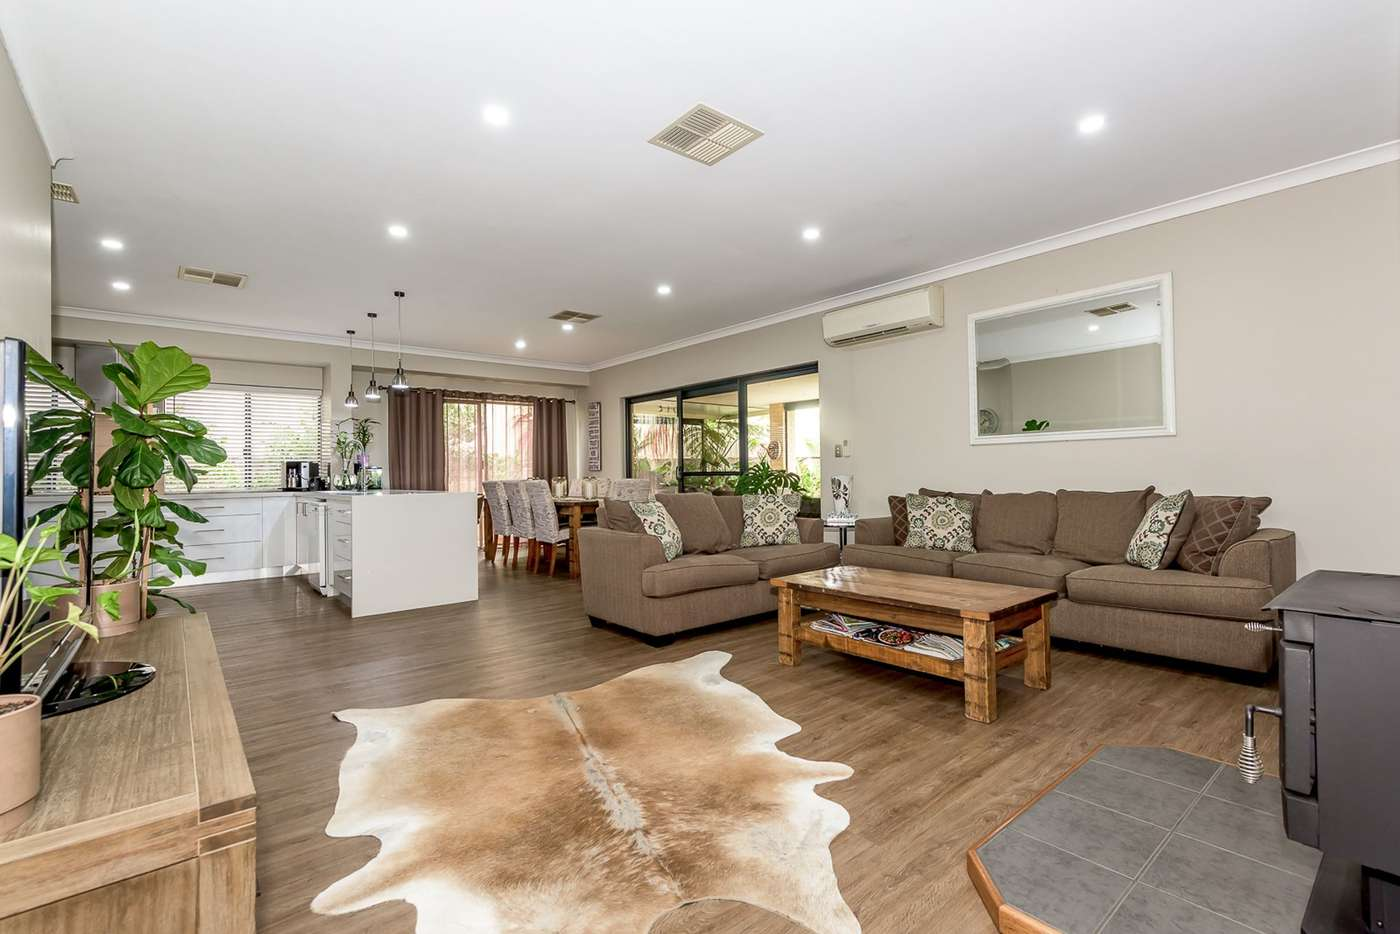 Seventh view of Homely house listing, 5 Tuomey Follow, Baldivis WA 6171